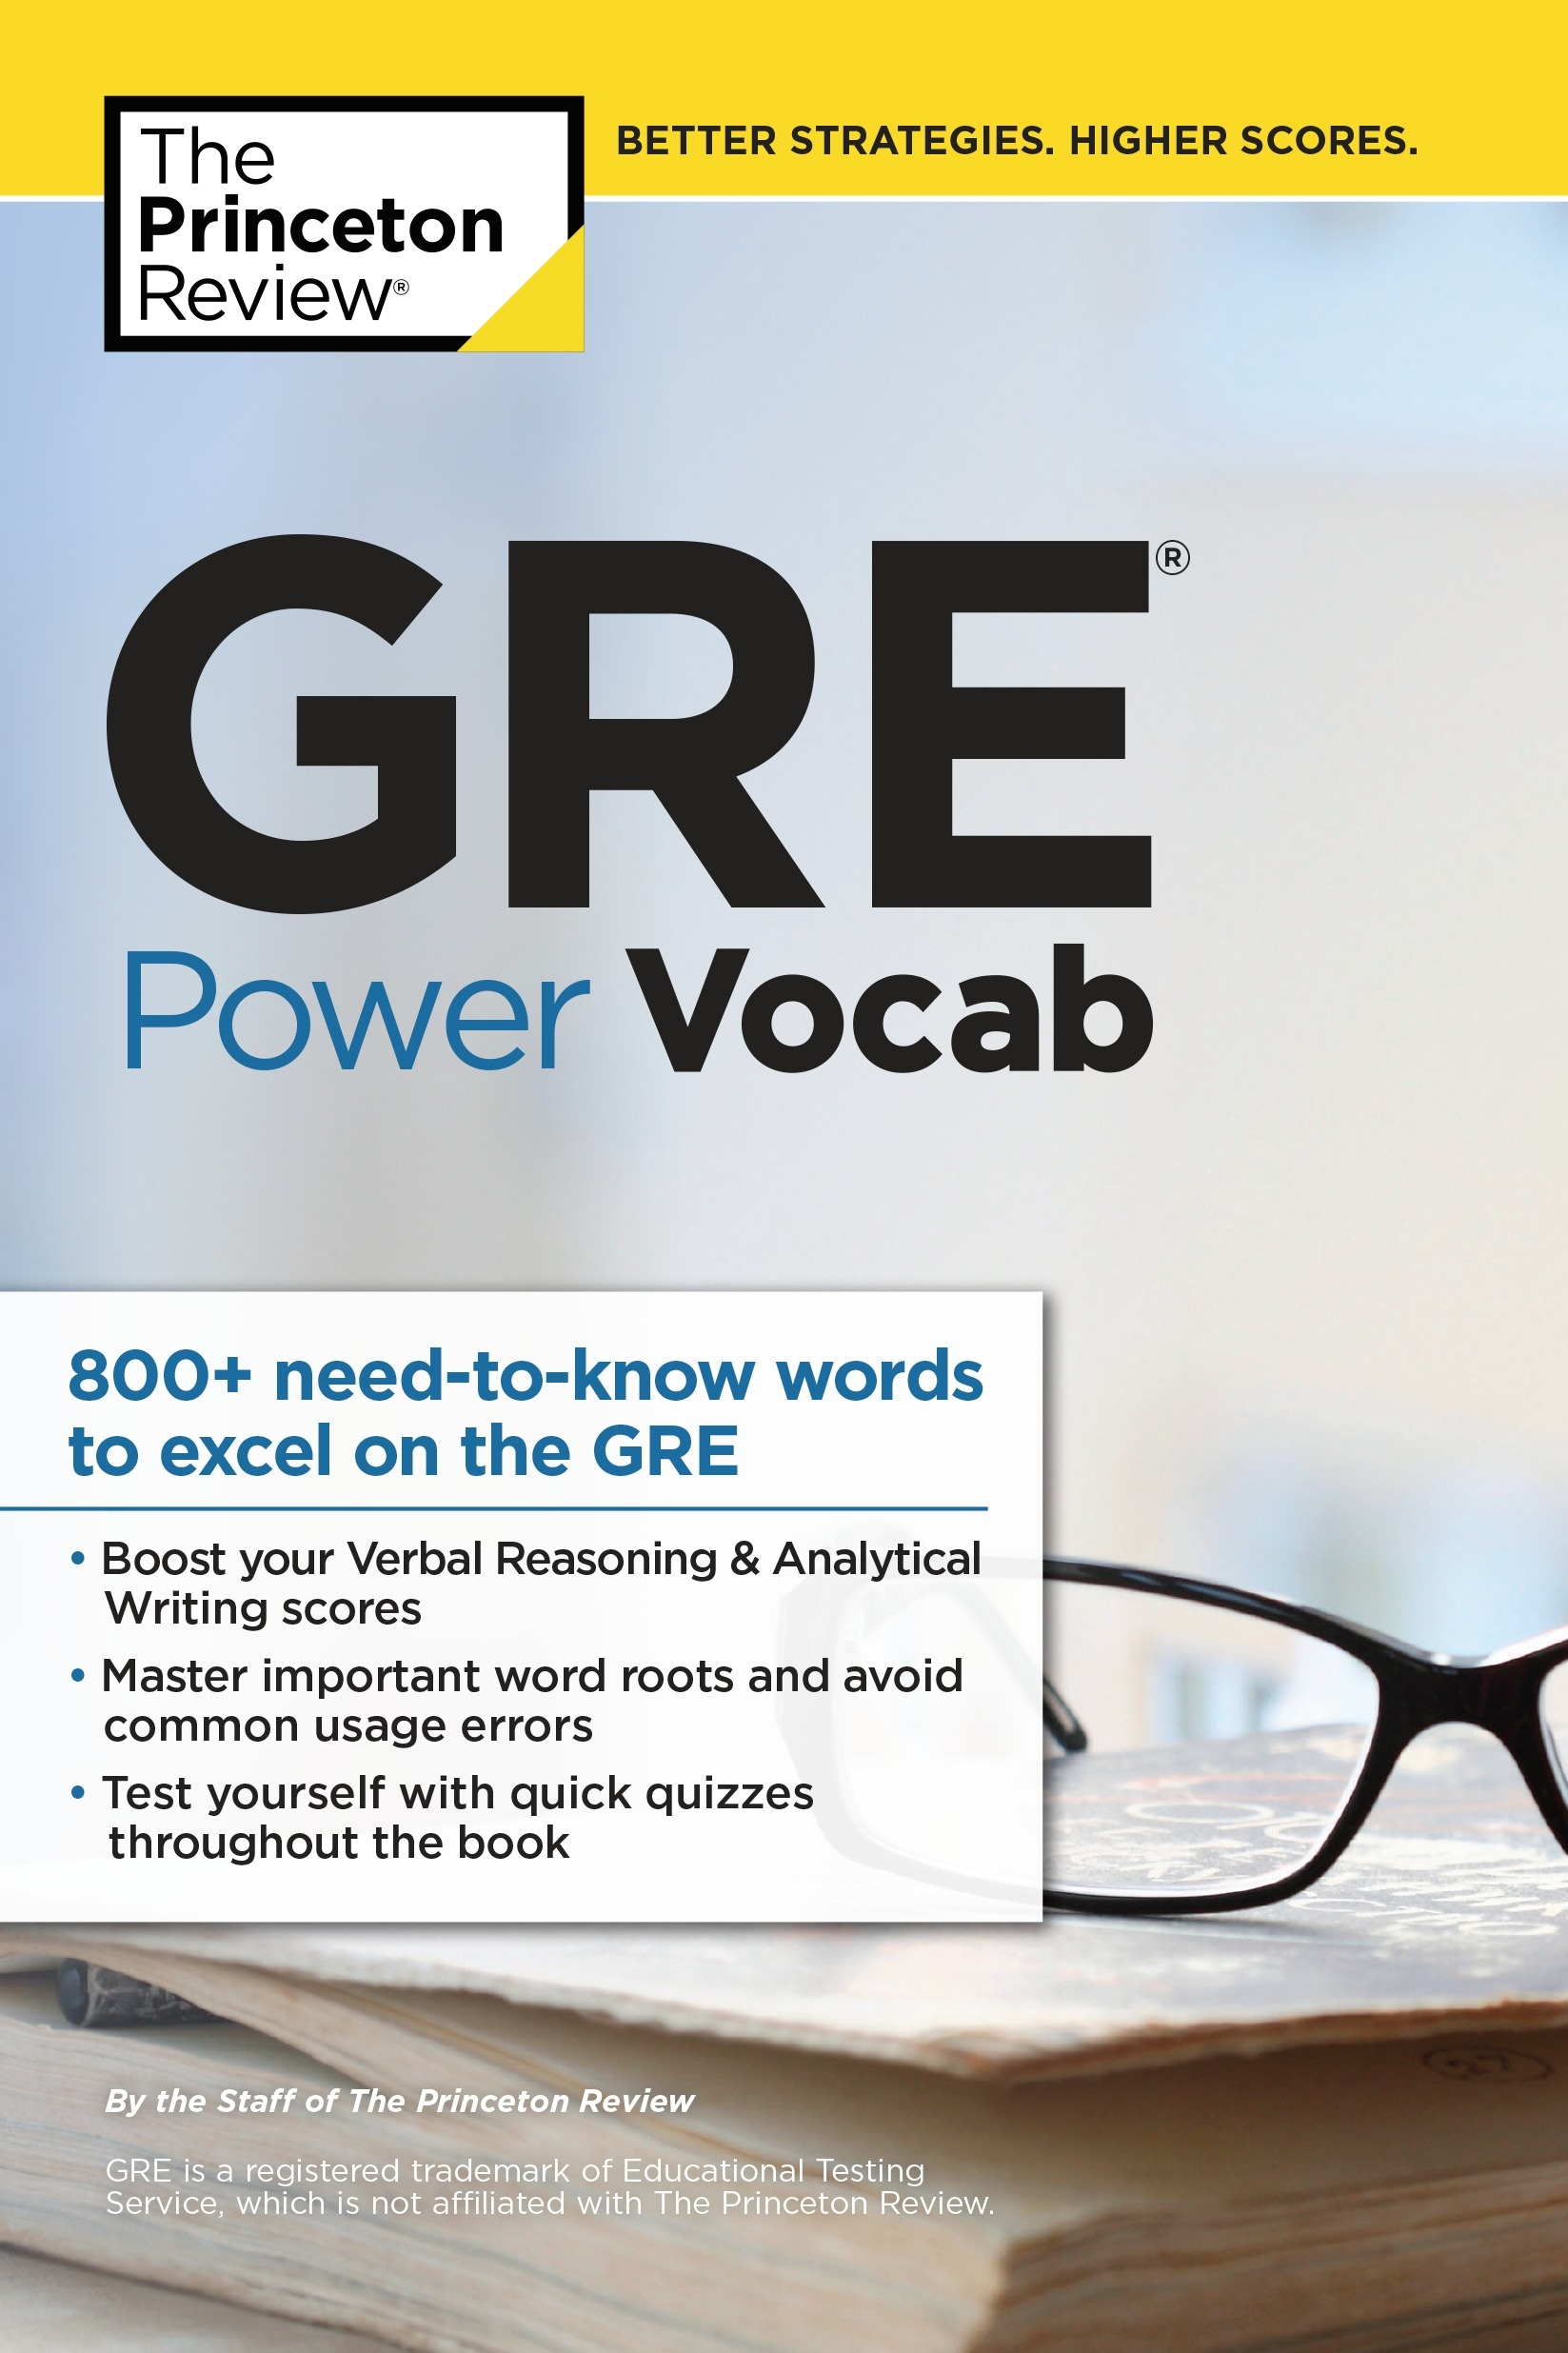 Gre Power Vocab by Princeton Review - Penguin Books New Zealand